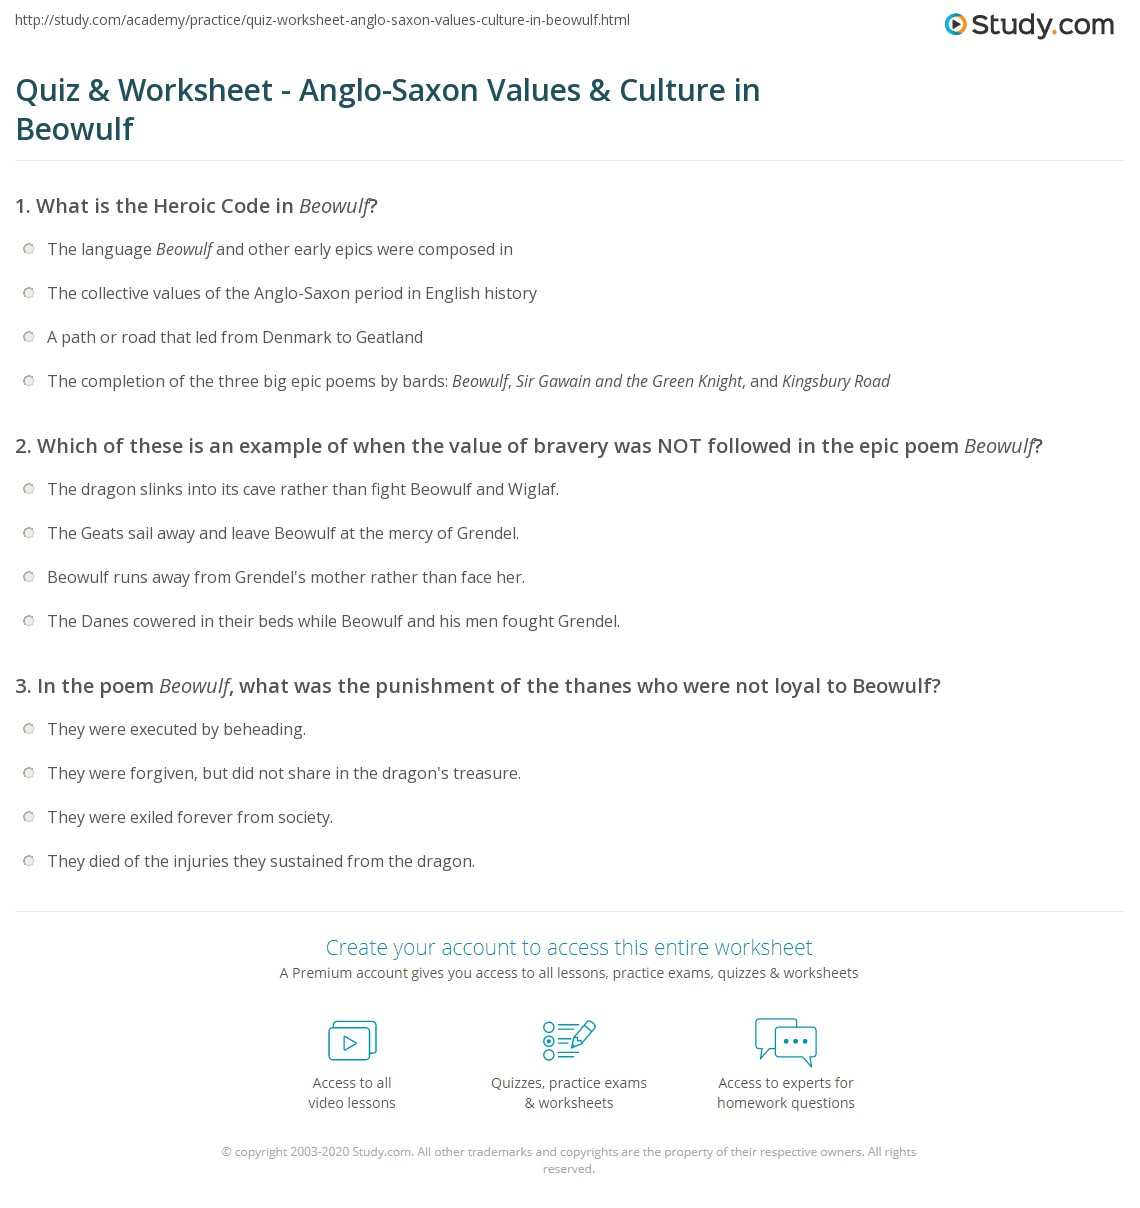 quiz worksheet anglo saxon values culture in beowulf. Black Bedroom Furniture Sets. Home Design Ideas